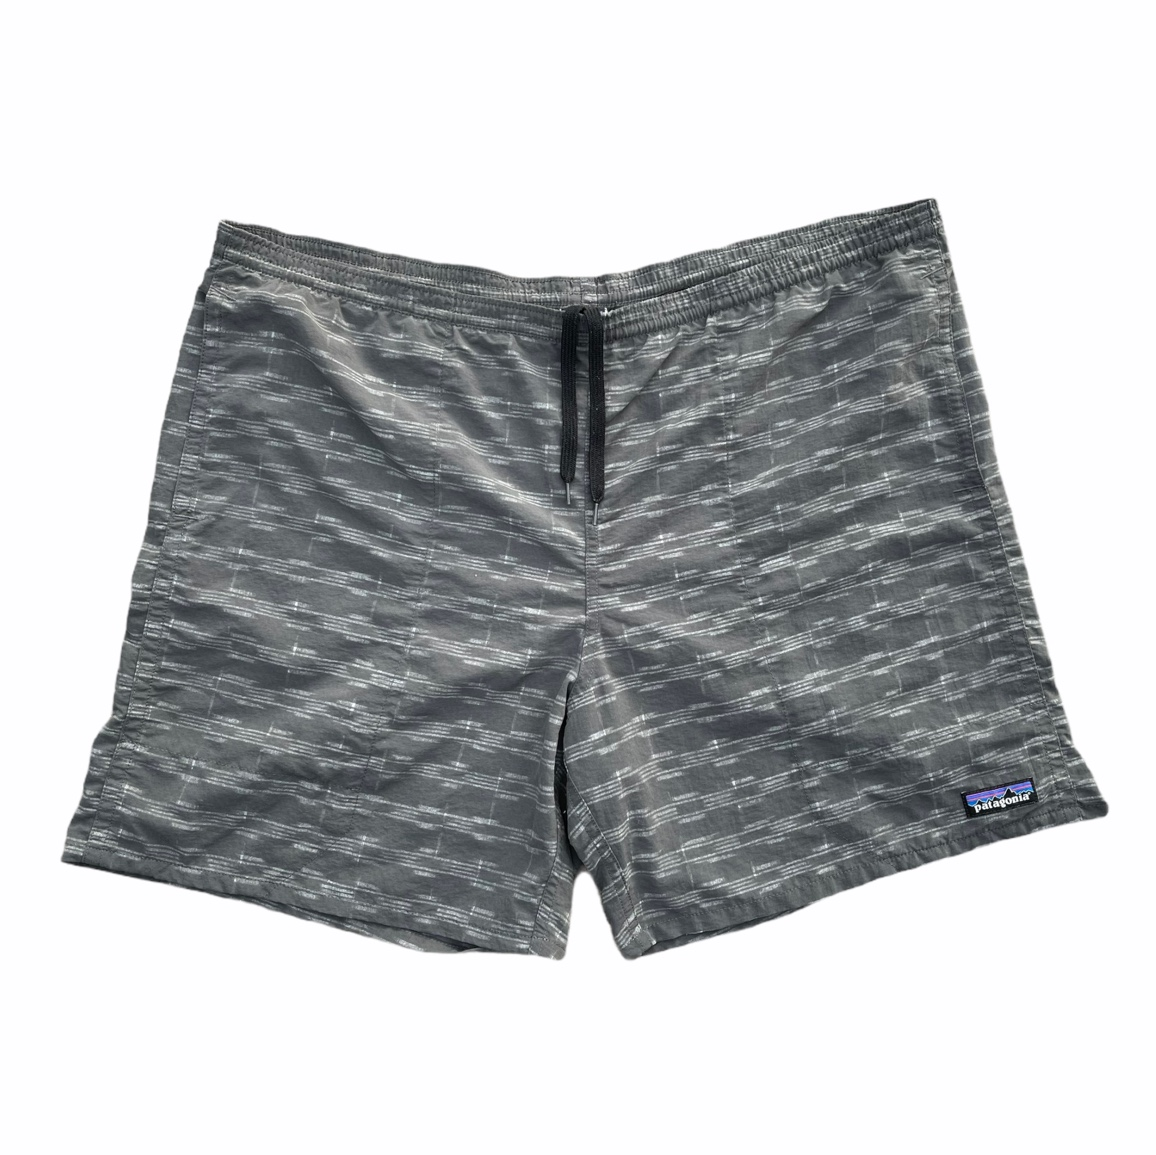 Product Image 1 - Modern Patagonia Shorts  In great